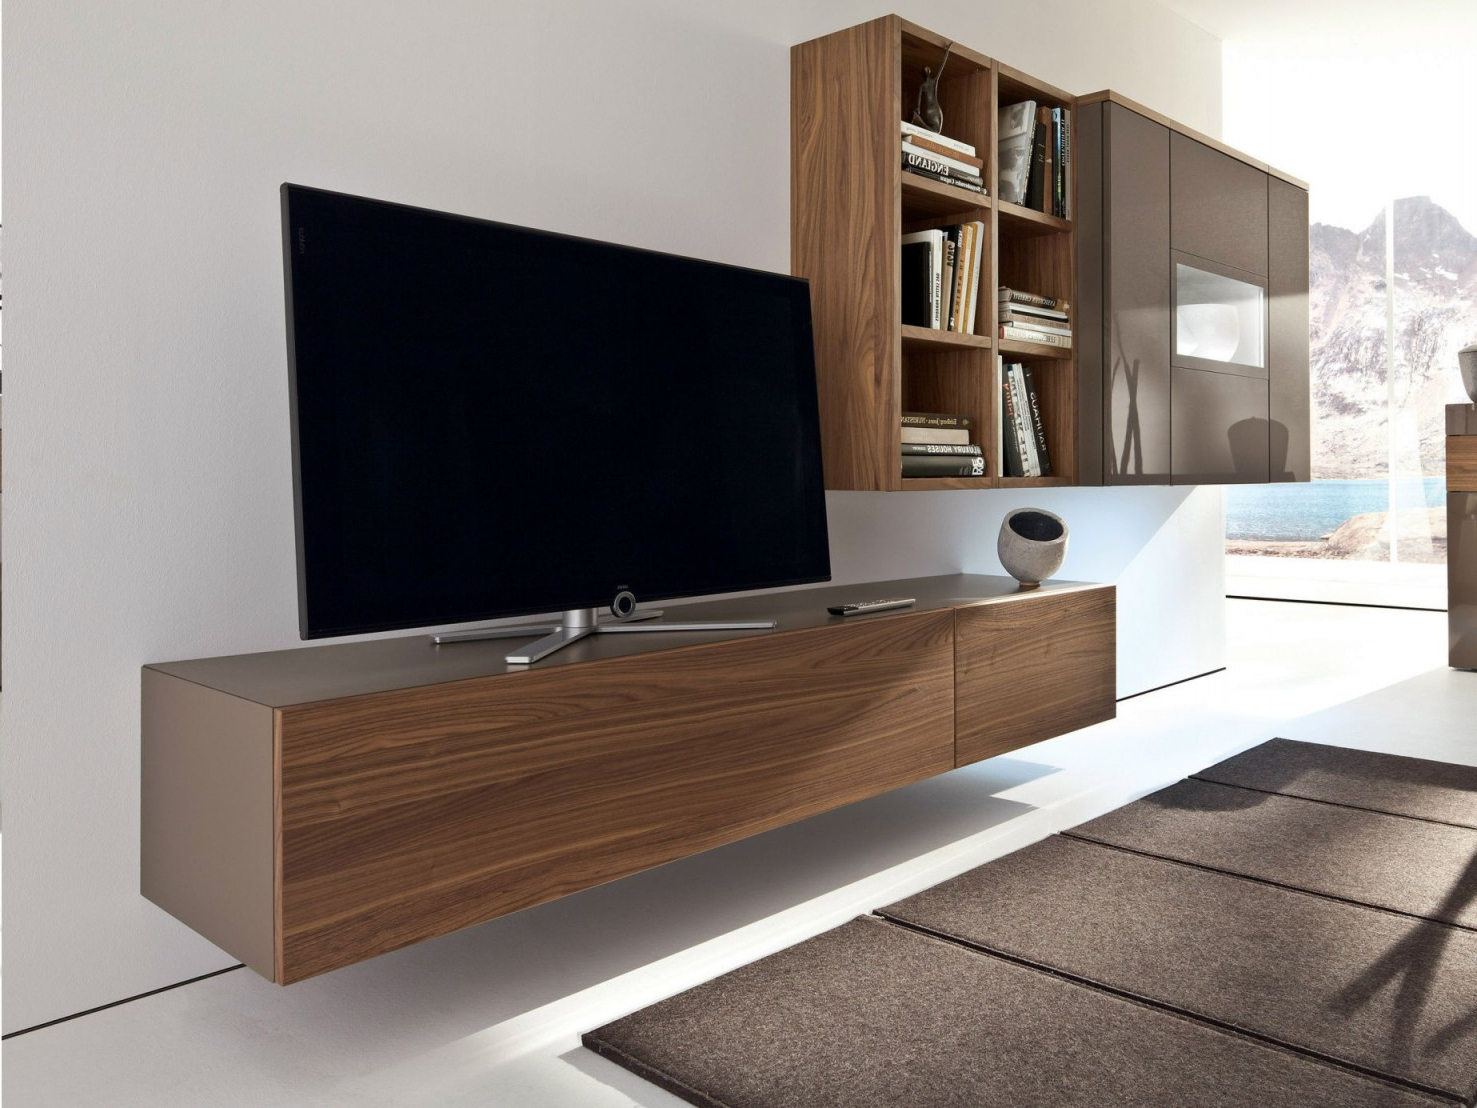 Preferred Wall Mounted Tv Racks Pertaining To Tv Cabinet Design Chic Brown Laminated Wooden Simple Wall Mounted Tv (Gallery 12 of 20)